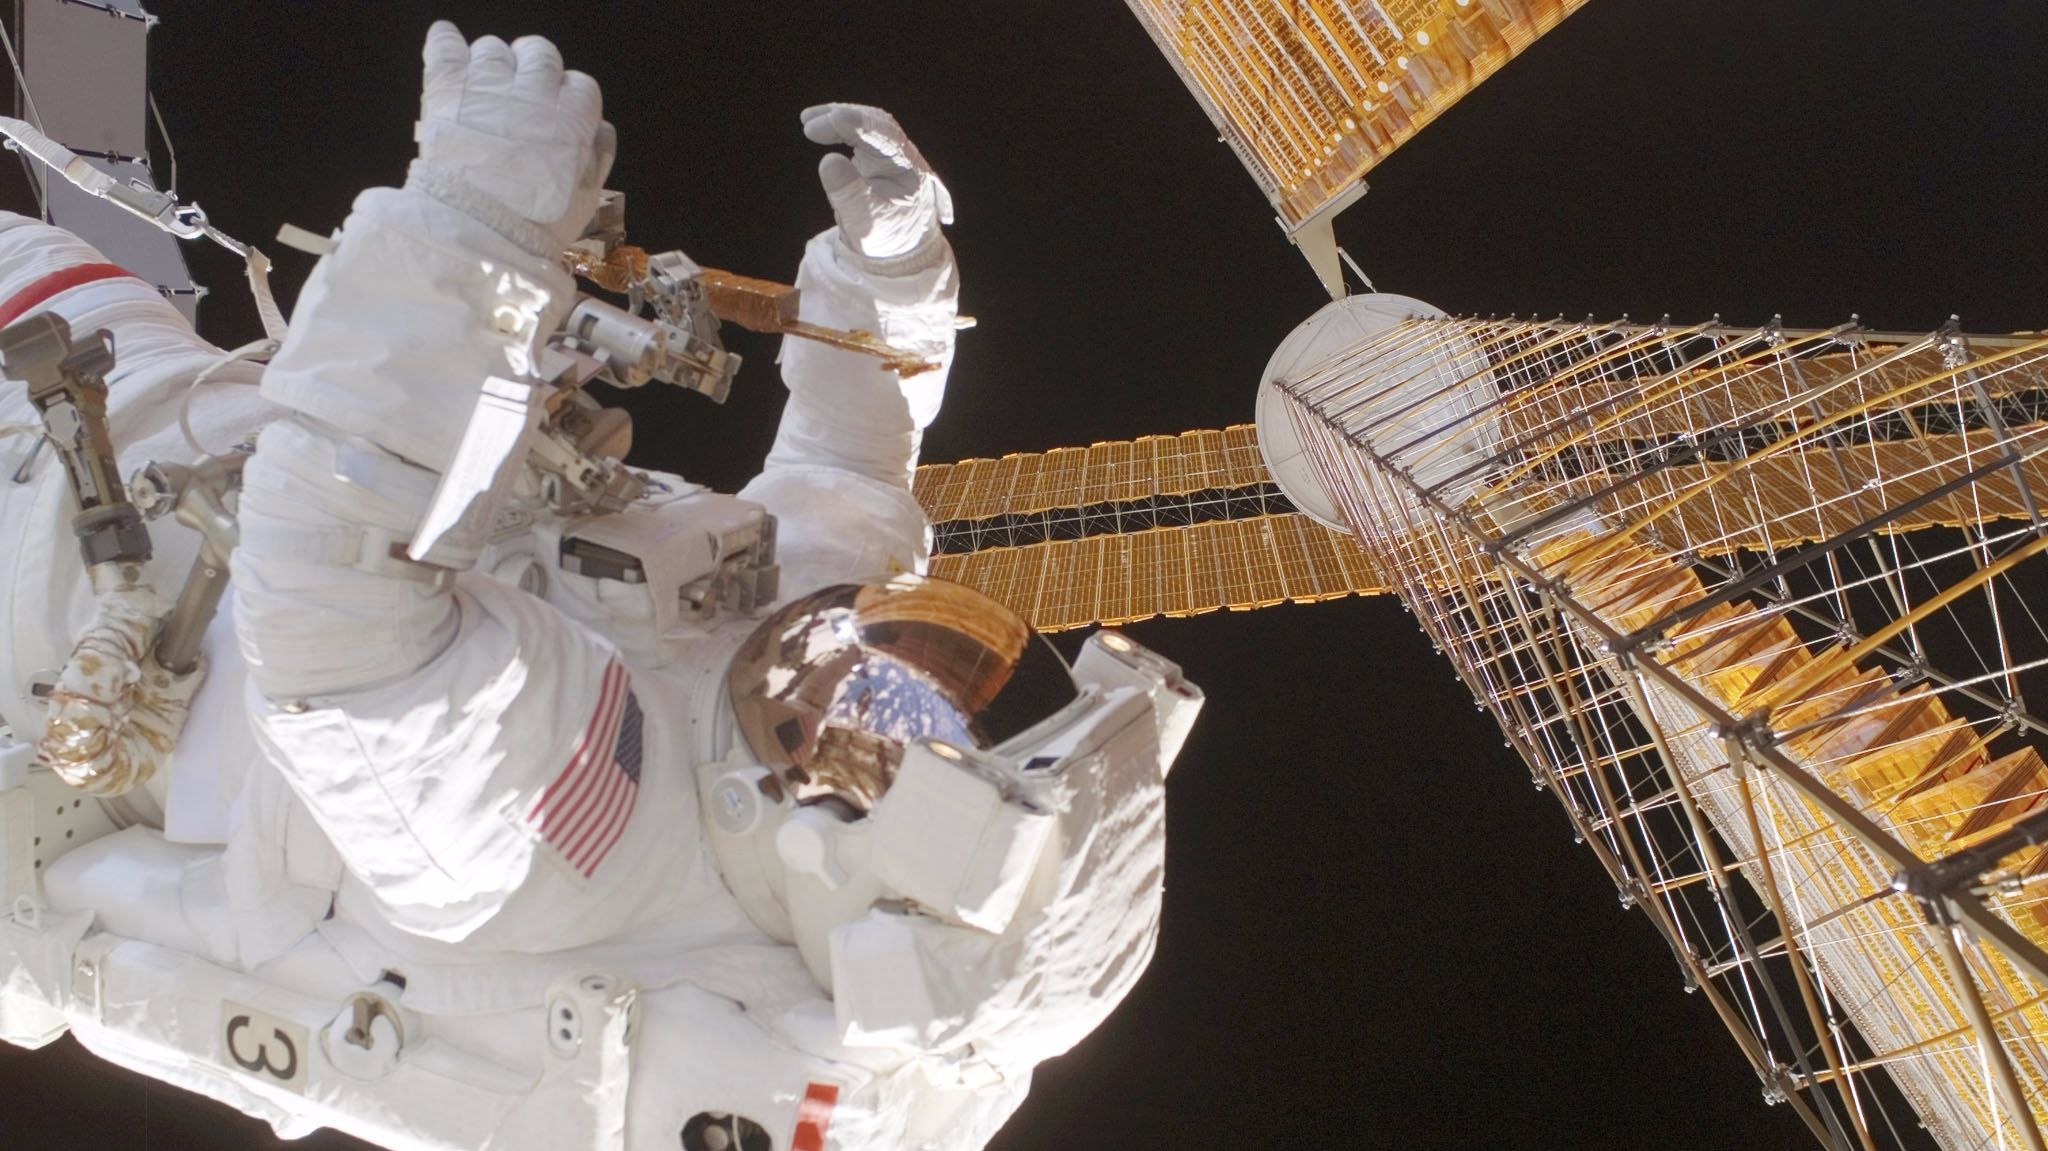 US space shuttle Discovery Mission Specialist US  Robert Curbeam inspects a balky solar array Dec. 18, 2006 on the International Space Station.